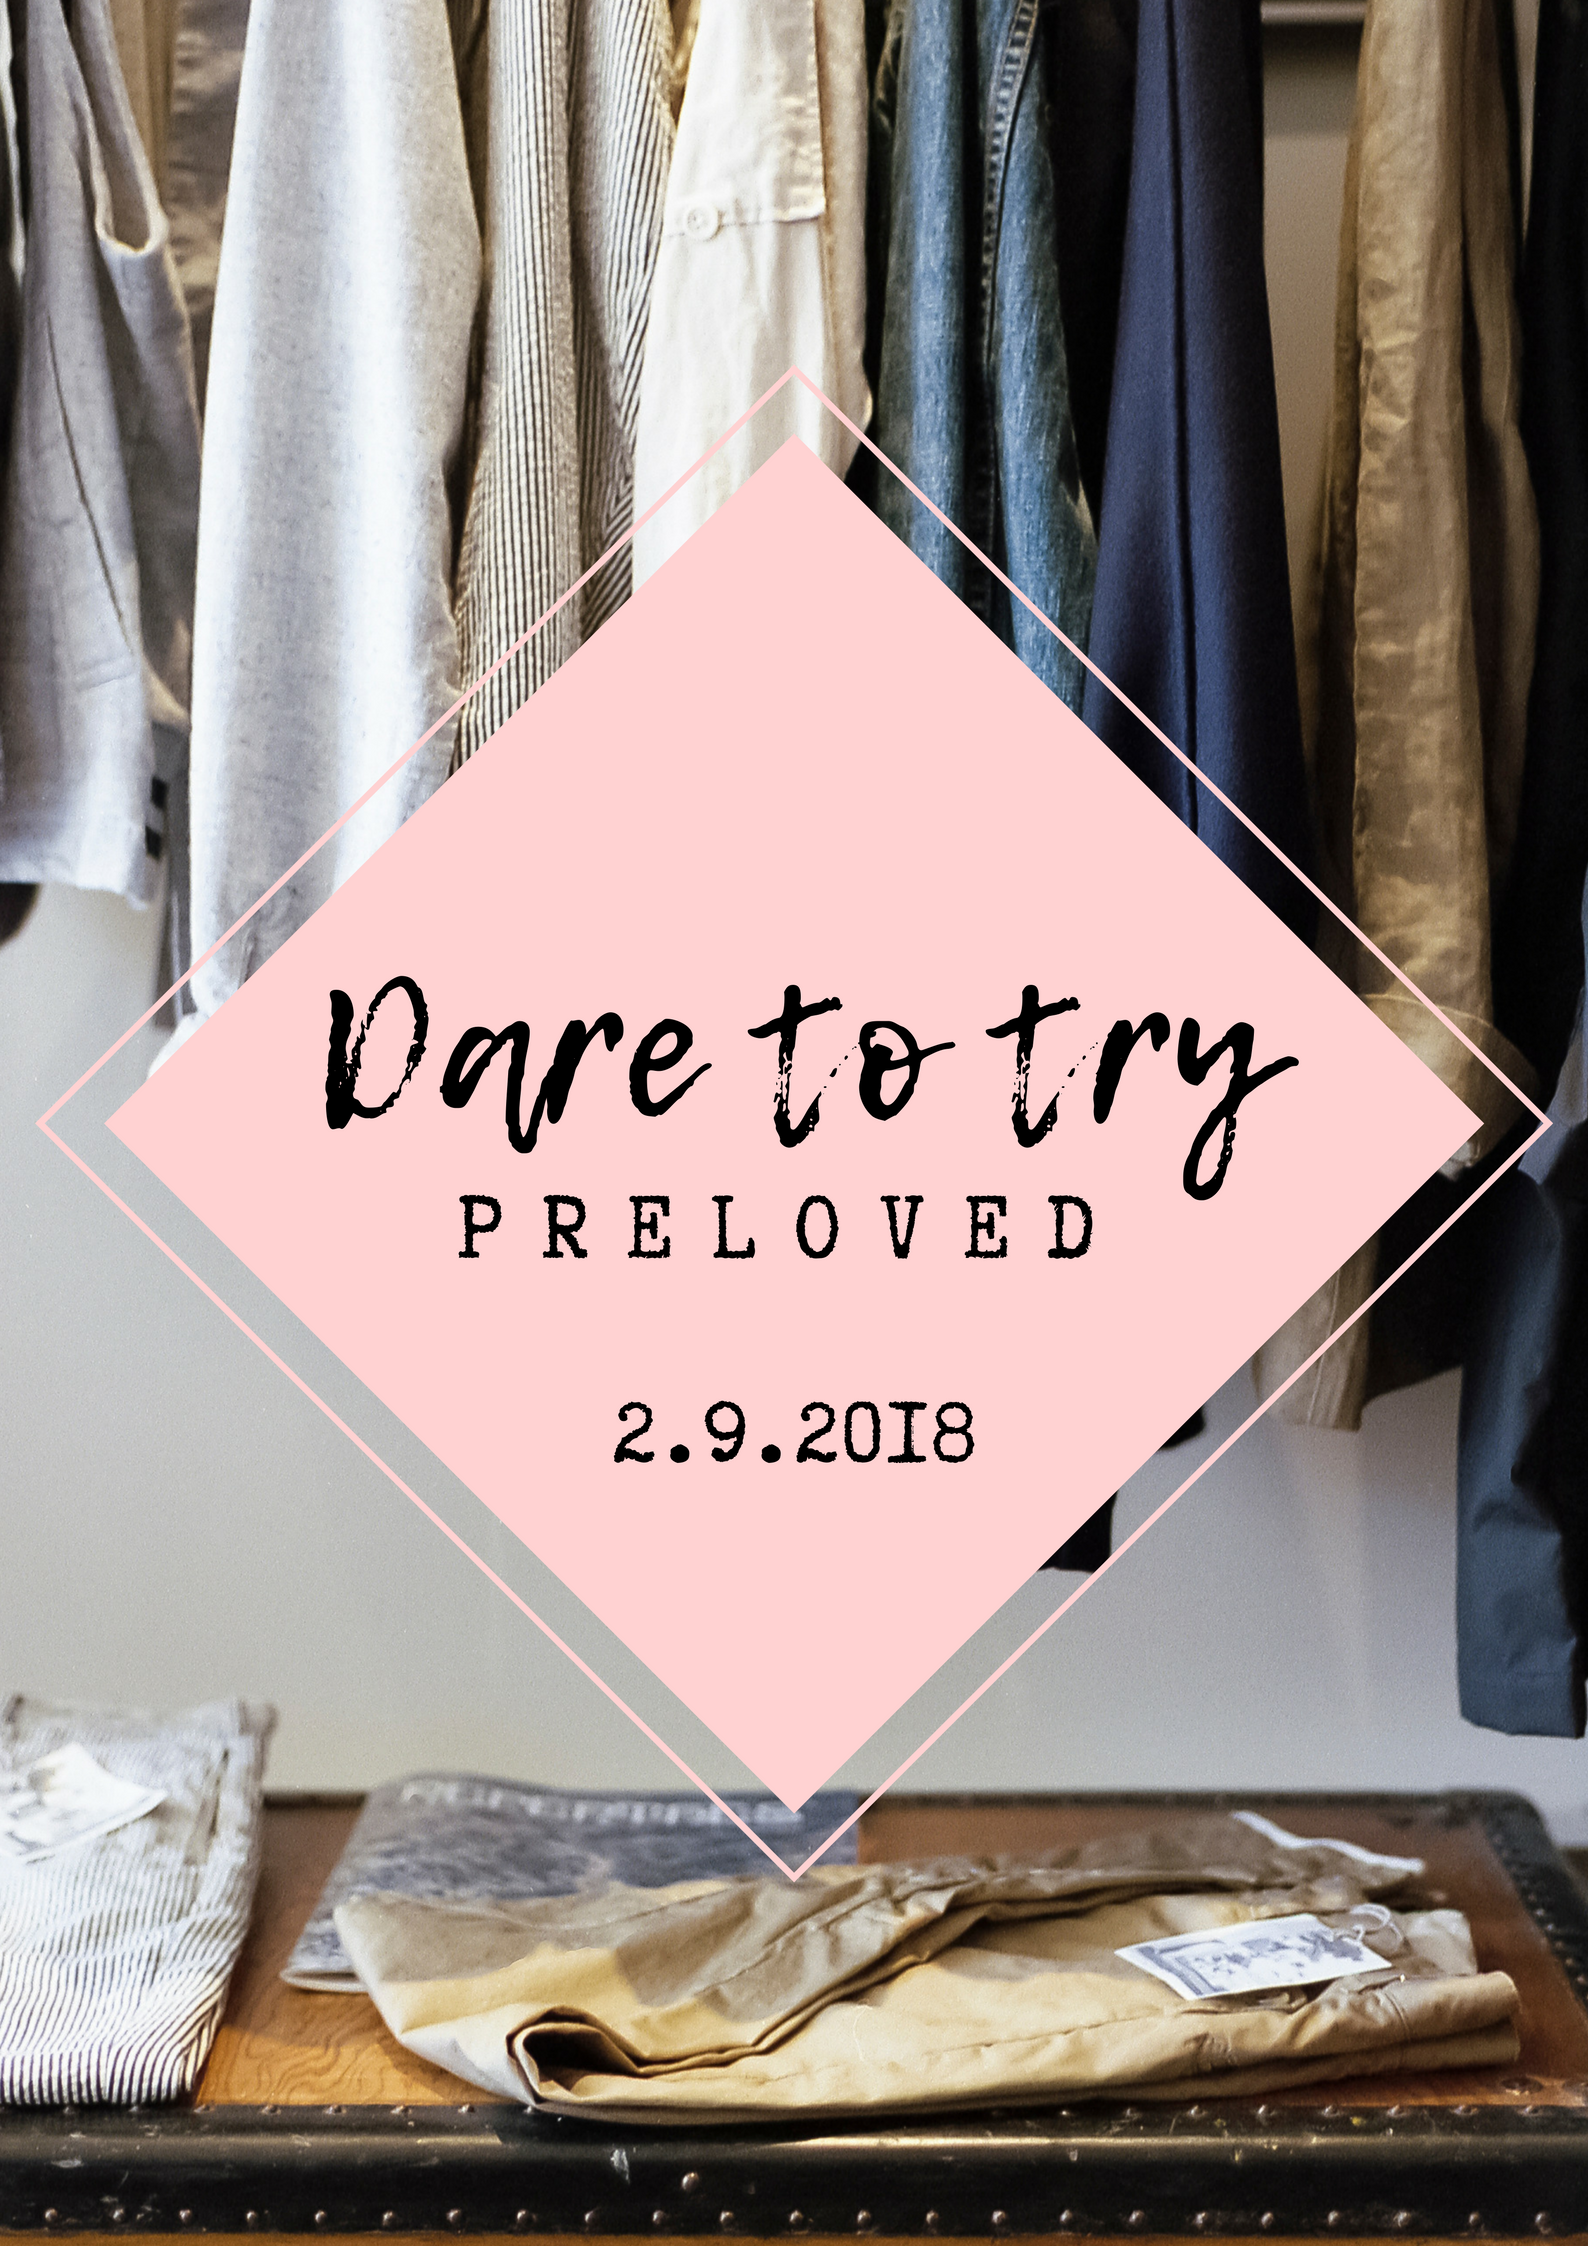 Dare to try preloved - second hand tapahtuma